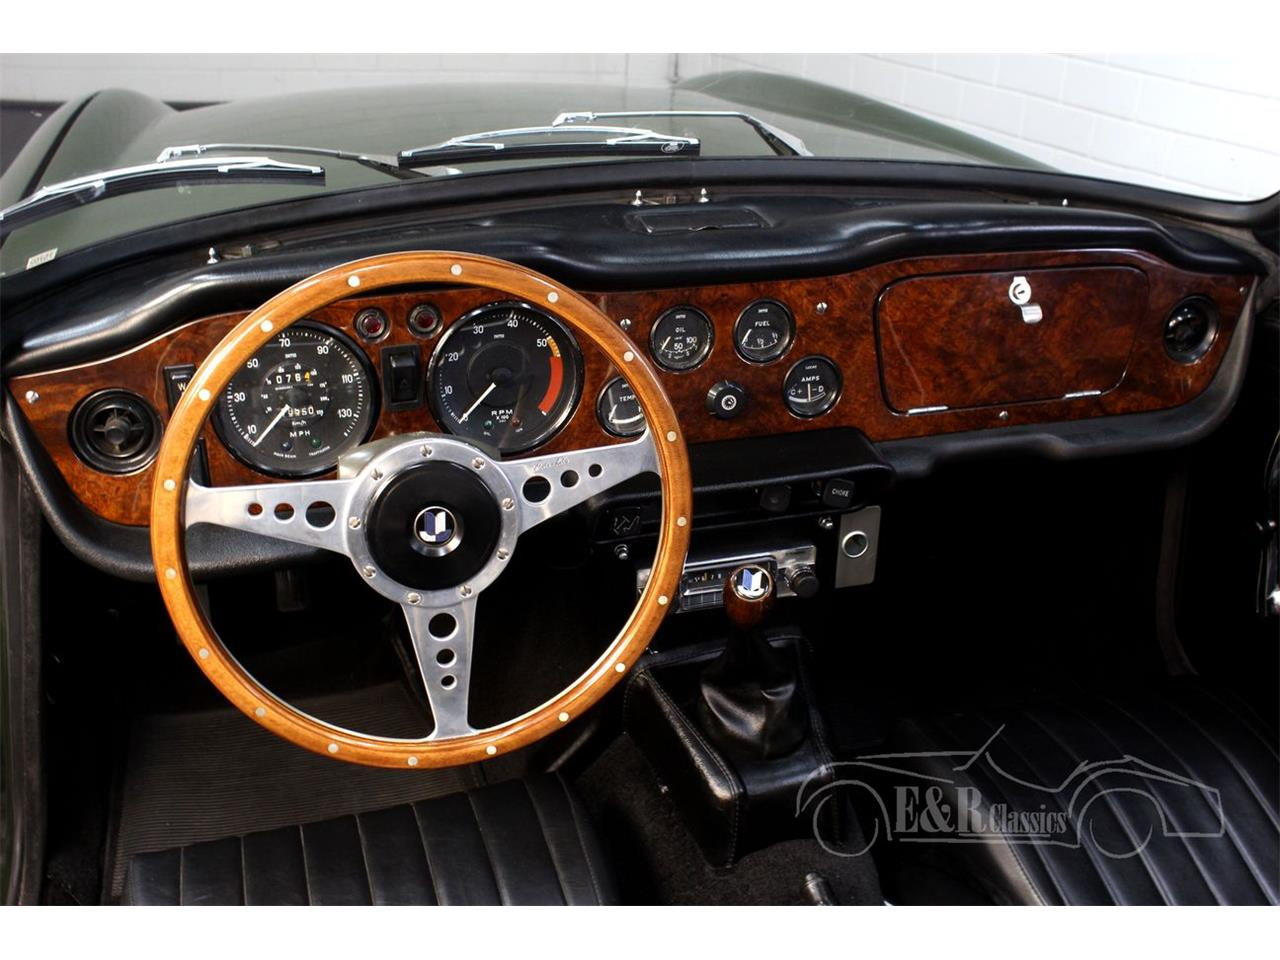 Large Picture of Classic '69 TR6 - $33,700.00 Offered by E & R Classics - PWOE